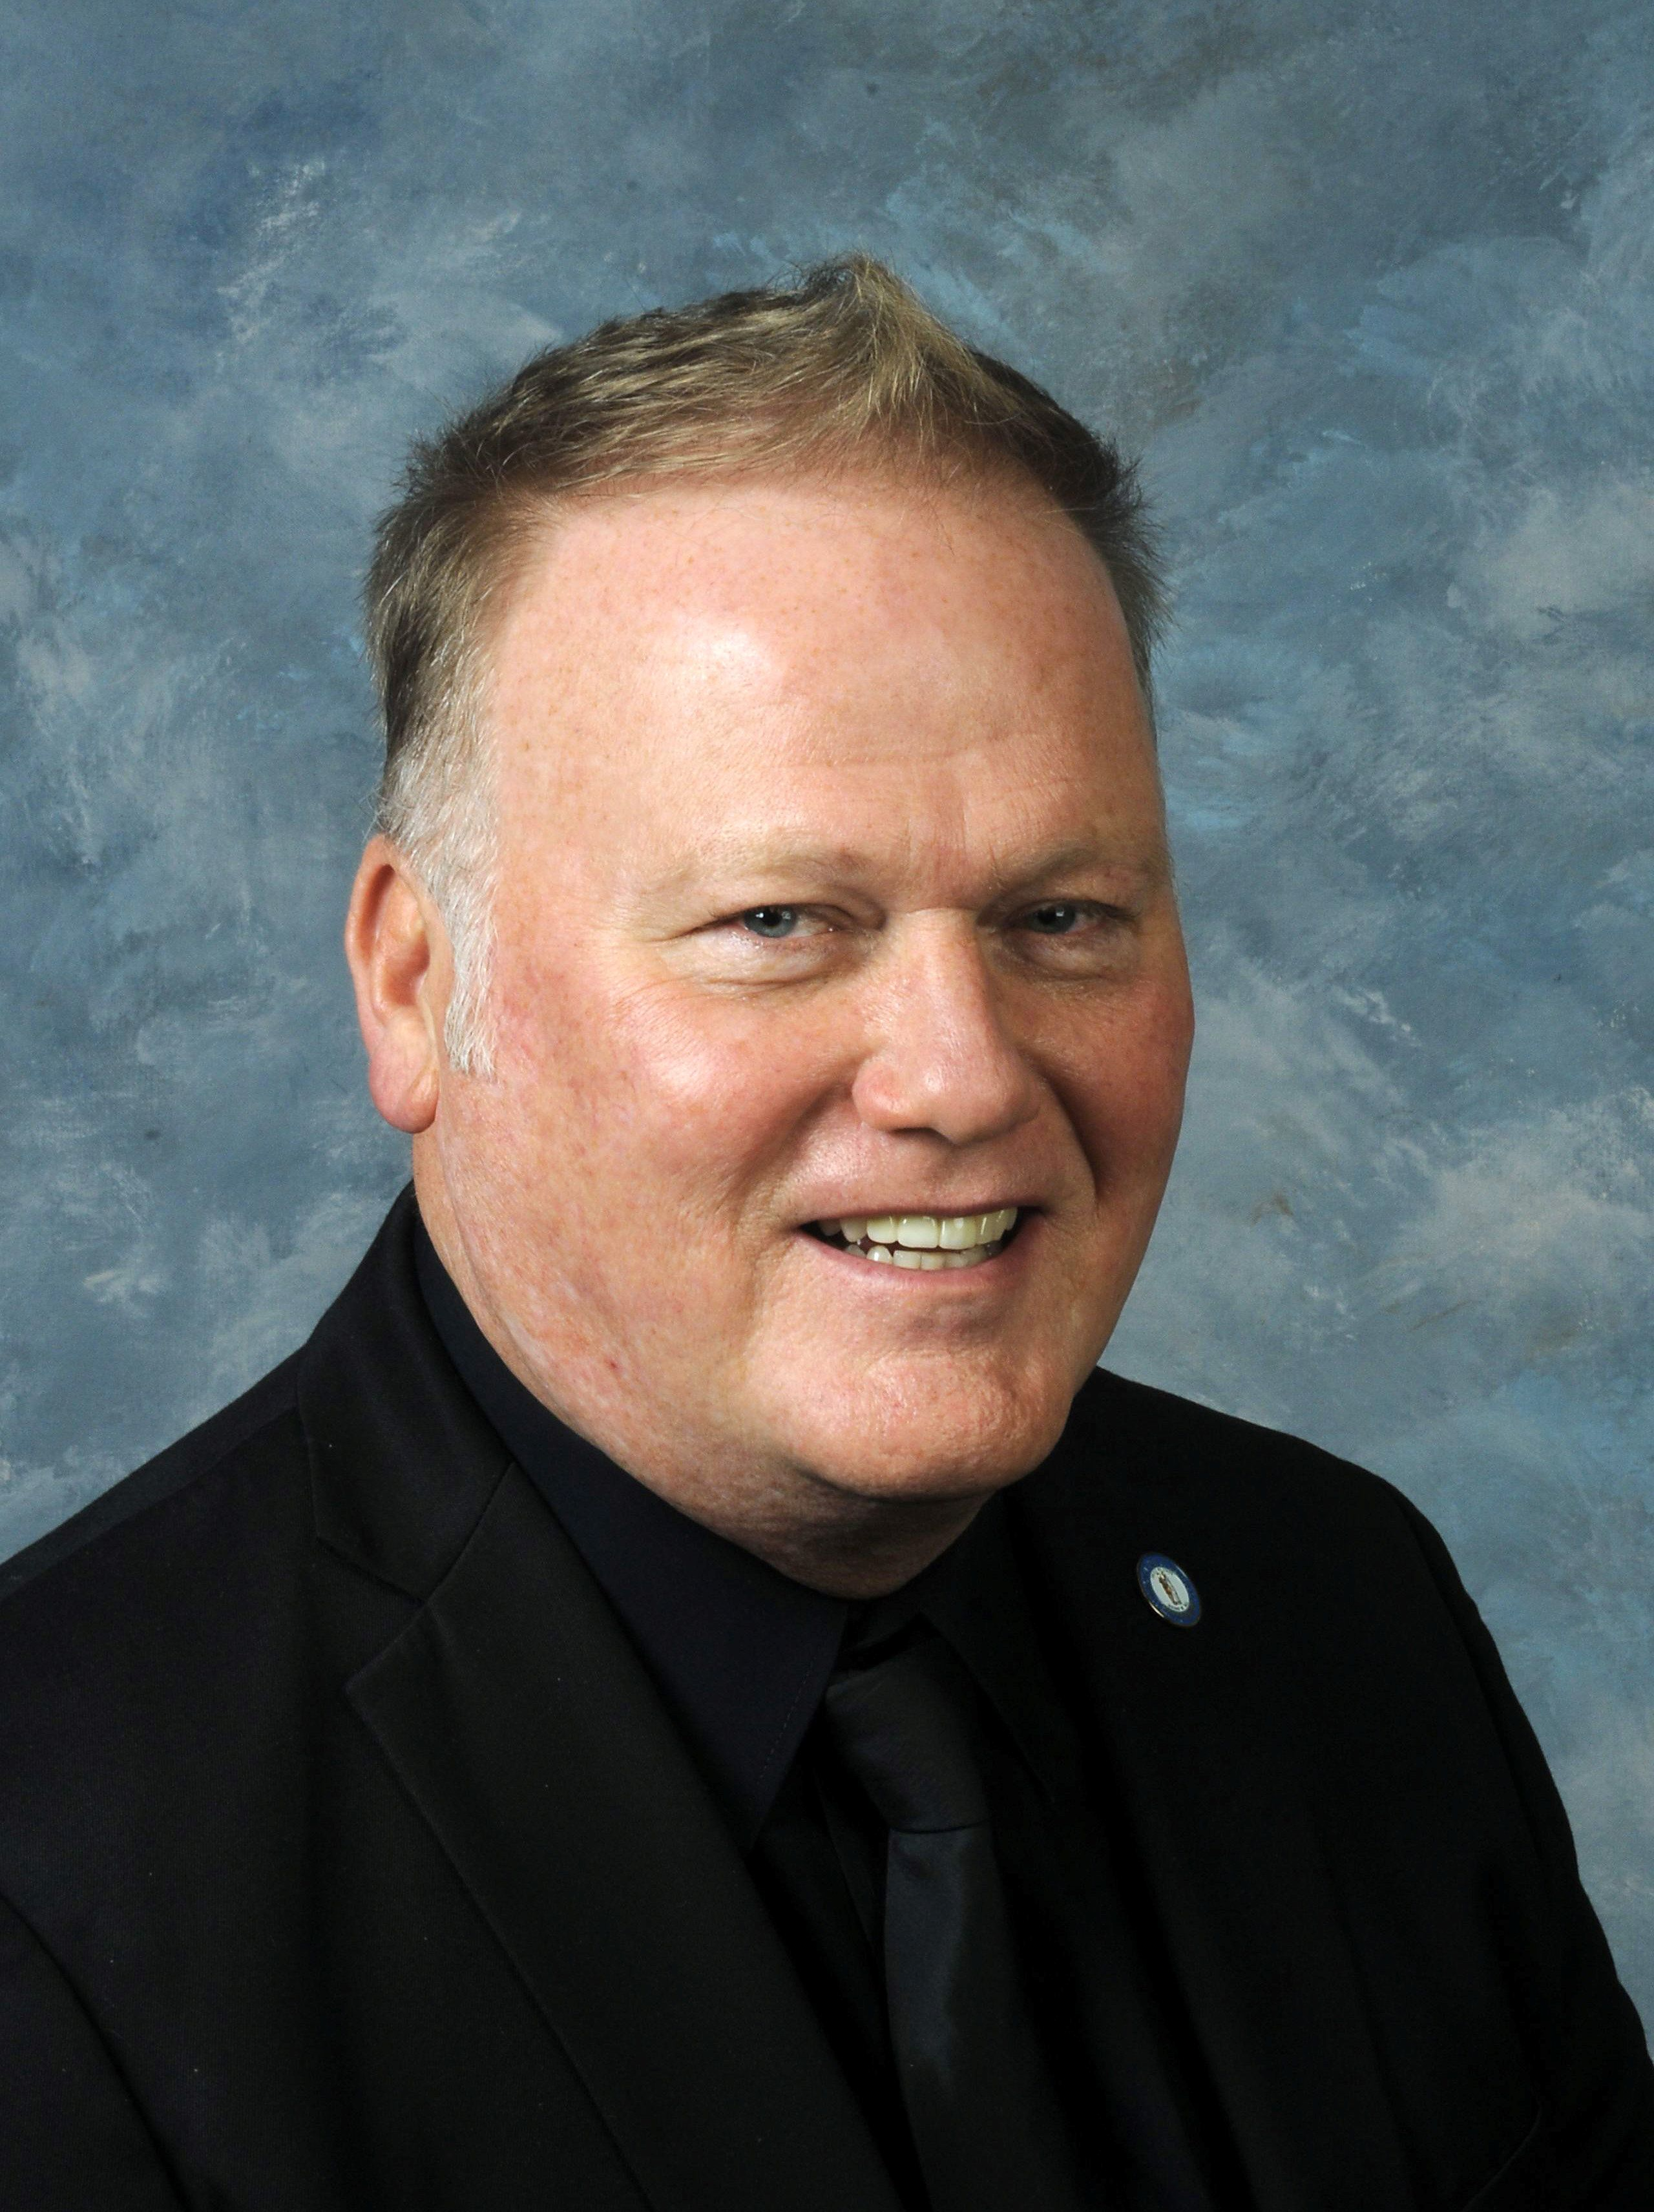 Kentucky state Representative Dan Johnson (R-KY), who was facing sexual assault accusations, and died in a probable suicide on December 13, 2017, is shown in this December 15, 2016 handout photo in Frankfort, Kentucky, U.S.    Courtesy Kentucky Legislative Research Commission/Handout via REUTERS   ATTENTION EDITORS - THIS IMAGE WAS PROVIDED BY A THIRD PARTY